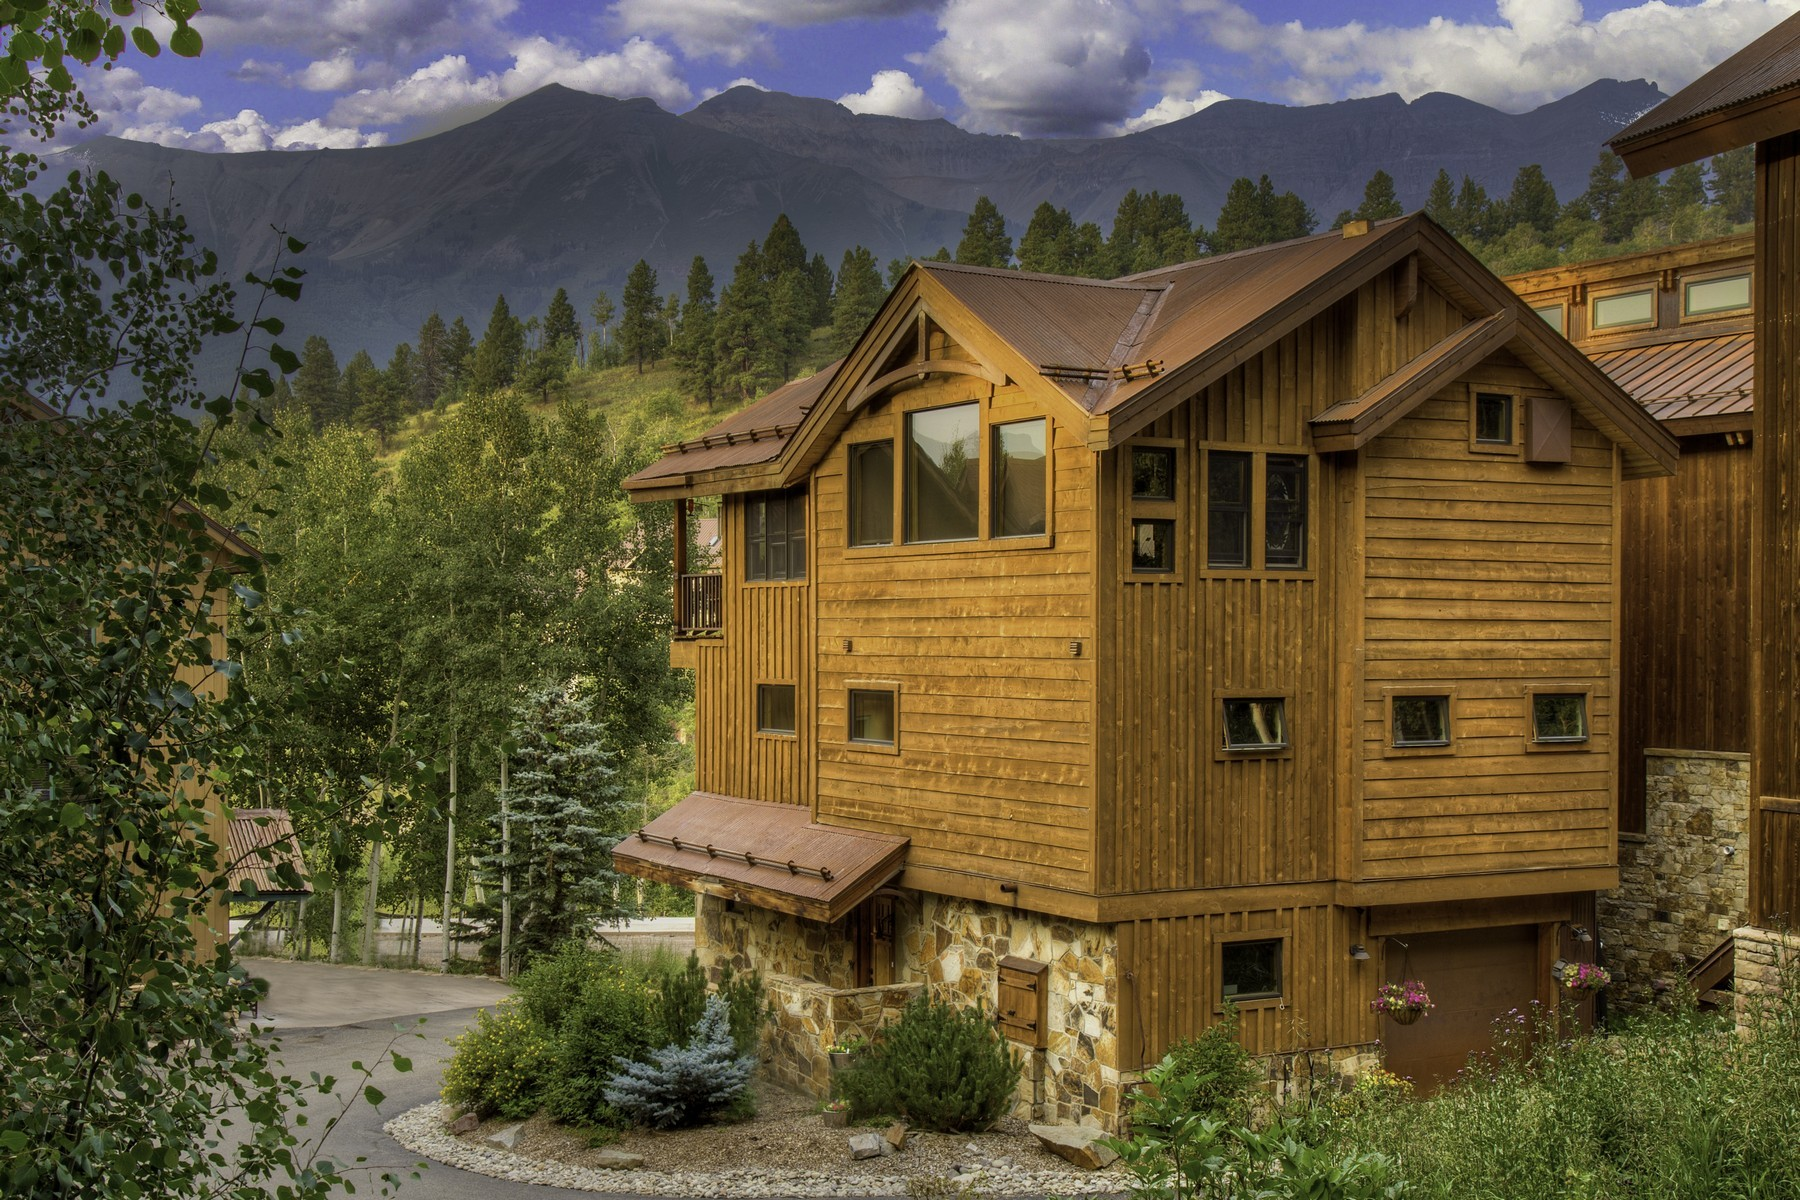 Single Family Home for Sale at 14 Spring Creek Drive Telluride, Colorado 81435 United States